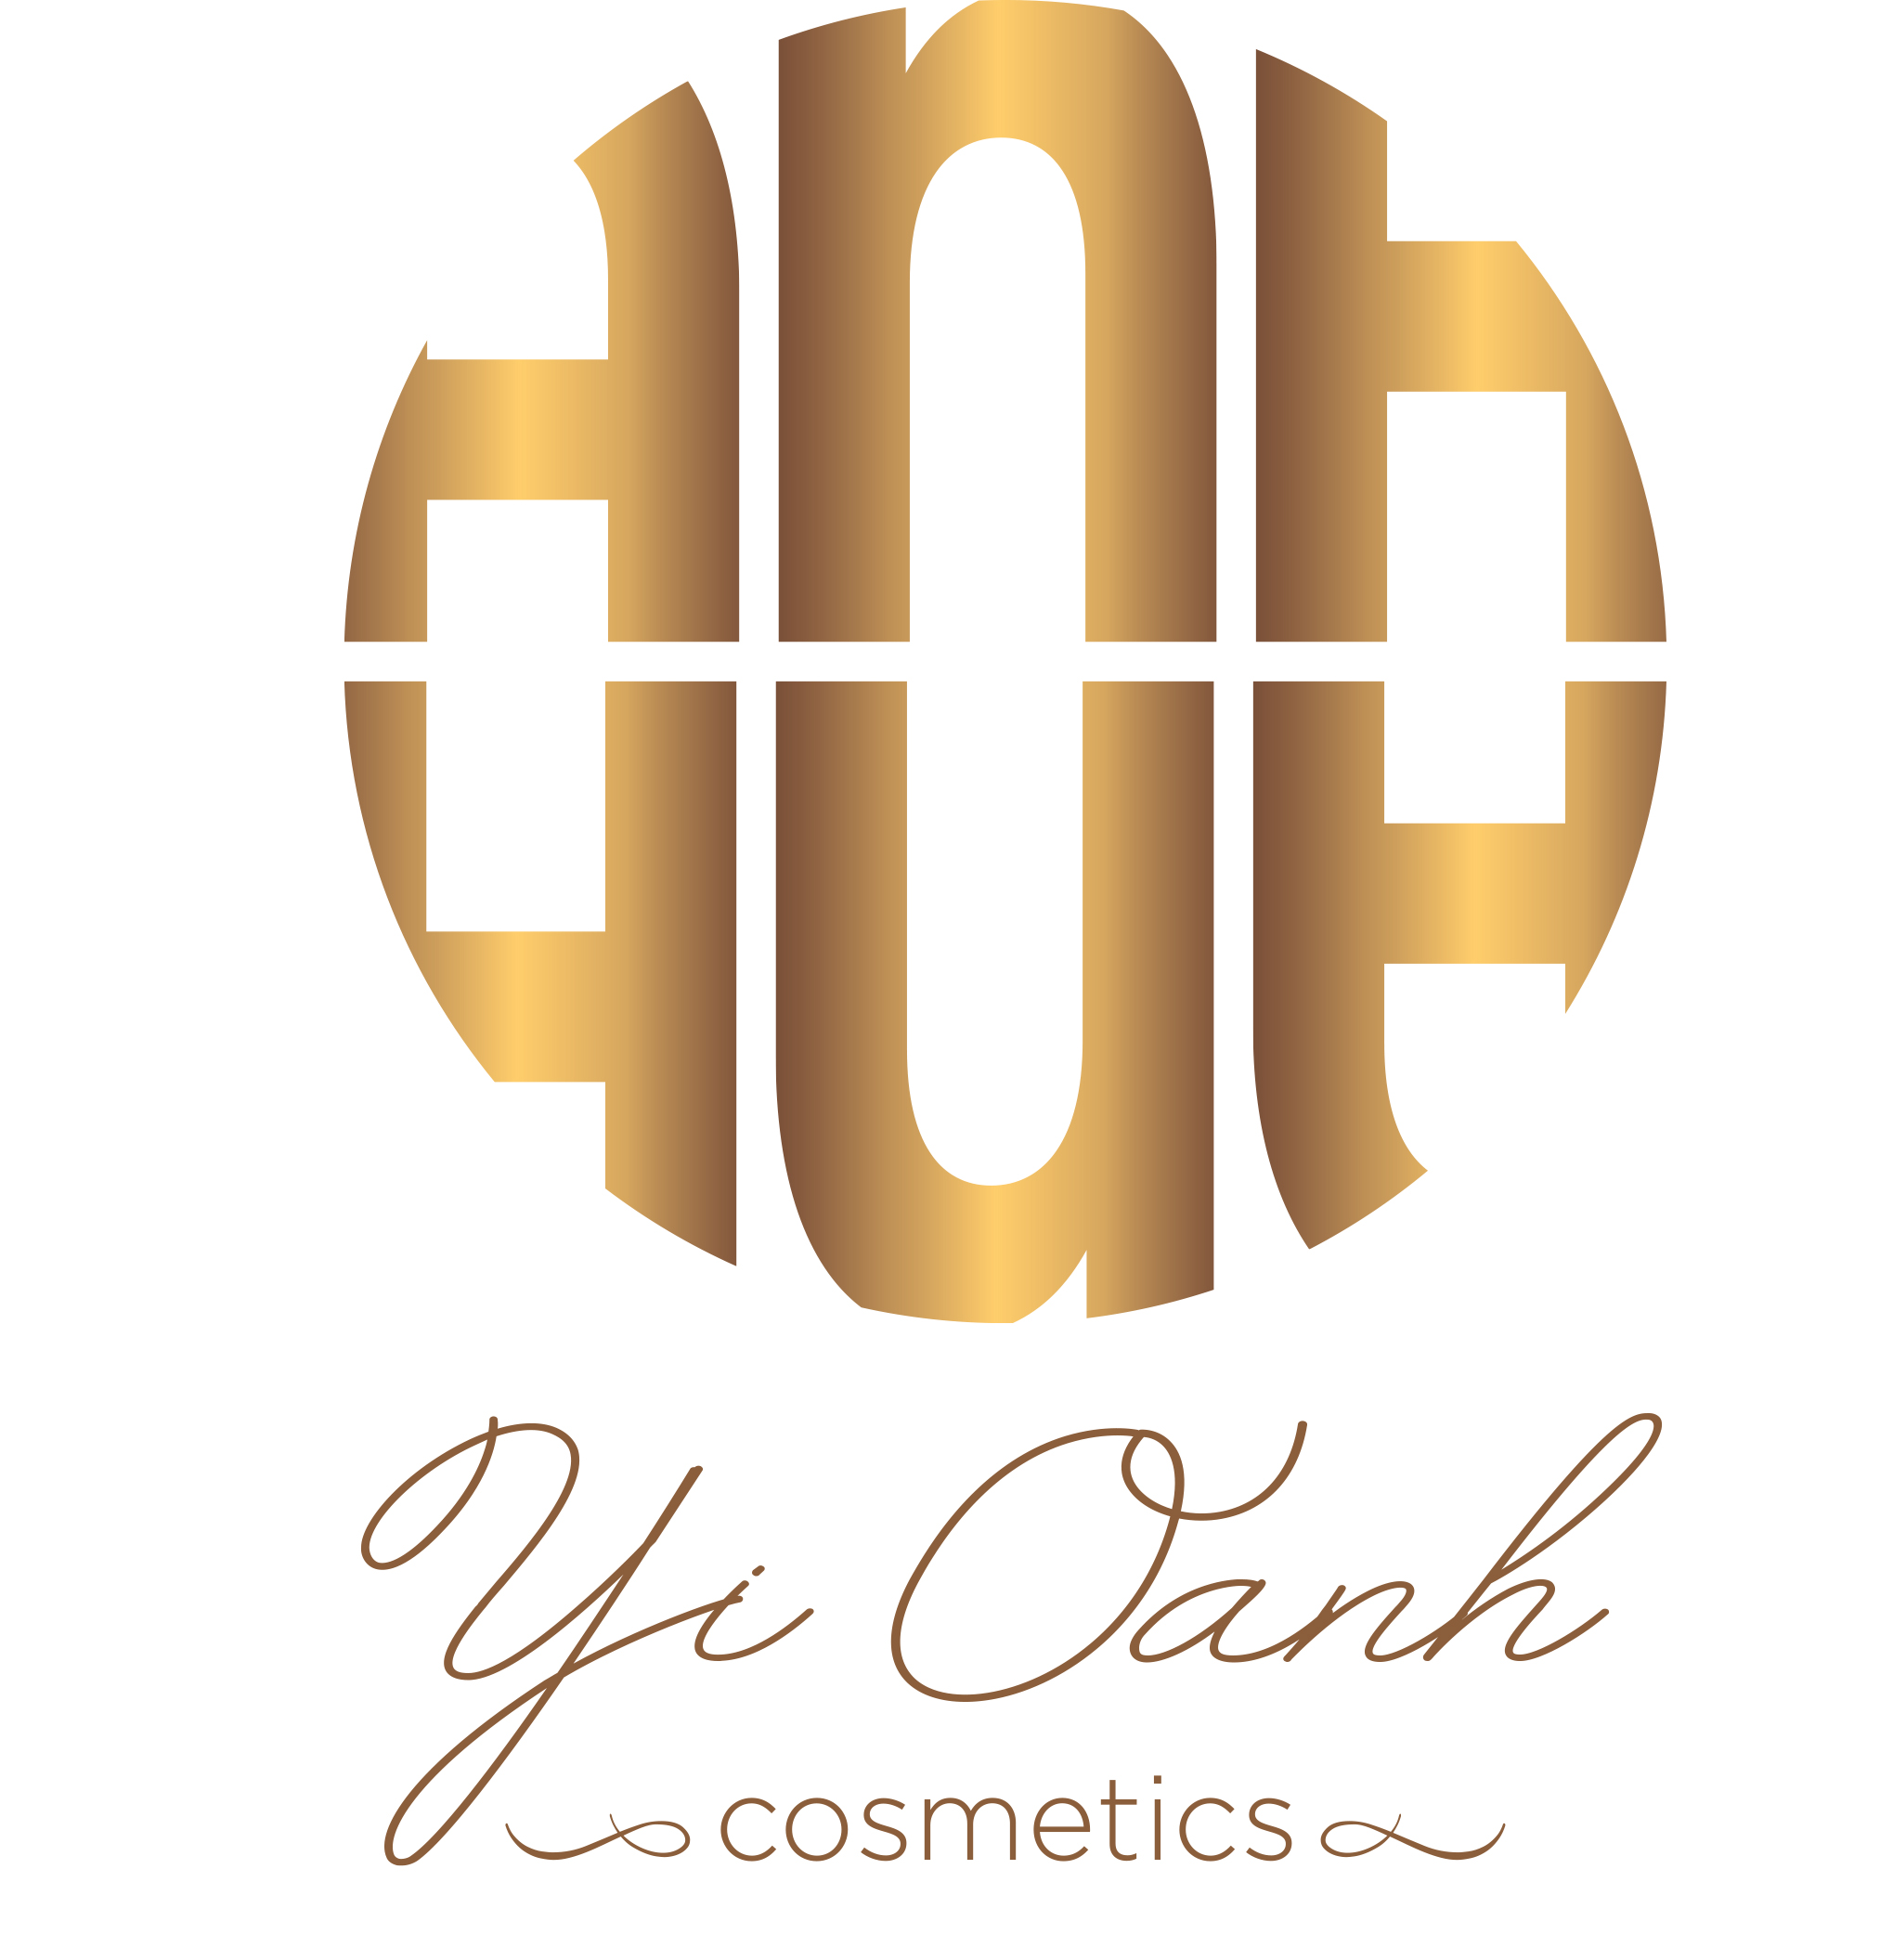 Yi Oanh Cosmetics Gold Luxury and Lovely Gentle Logo design